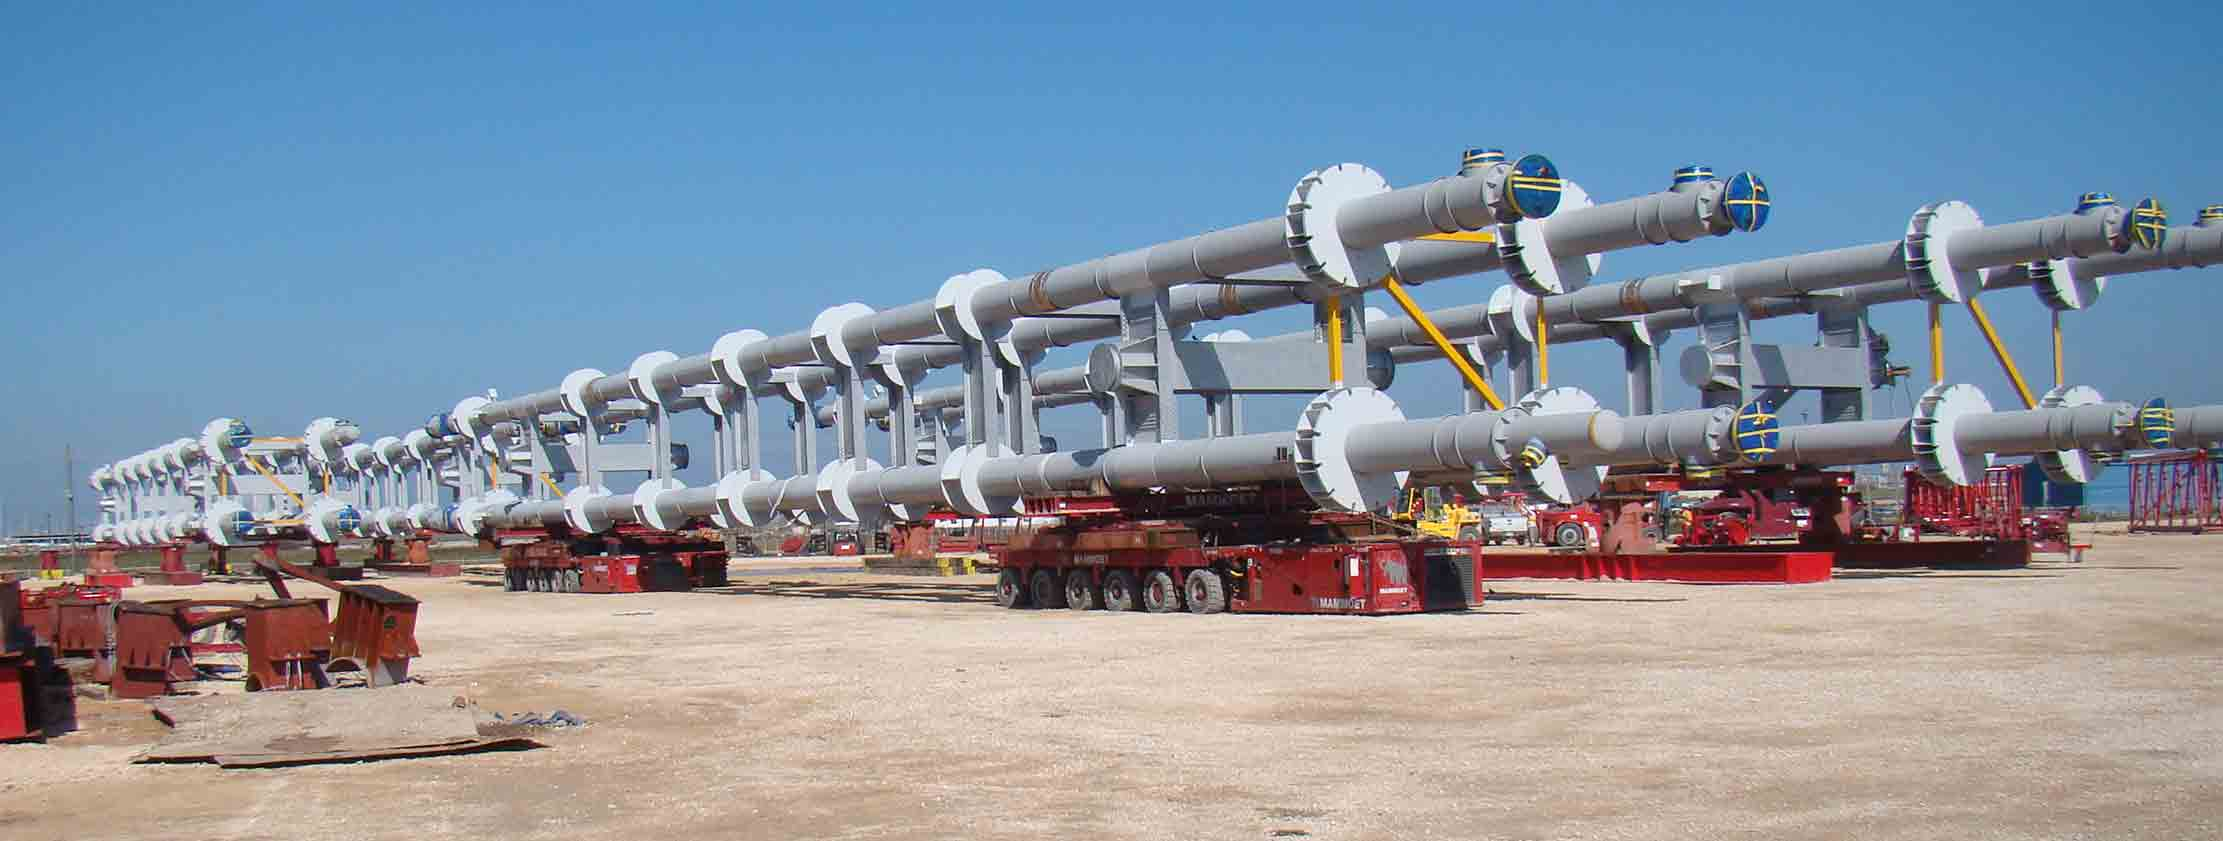 breakbulk shipping port freeport texas